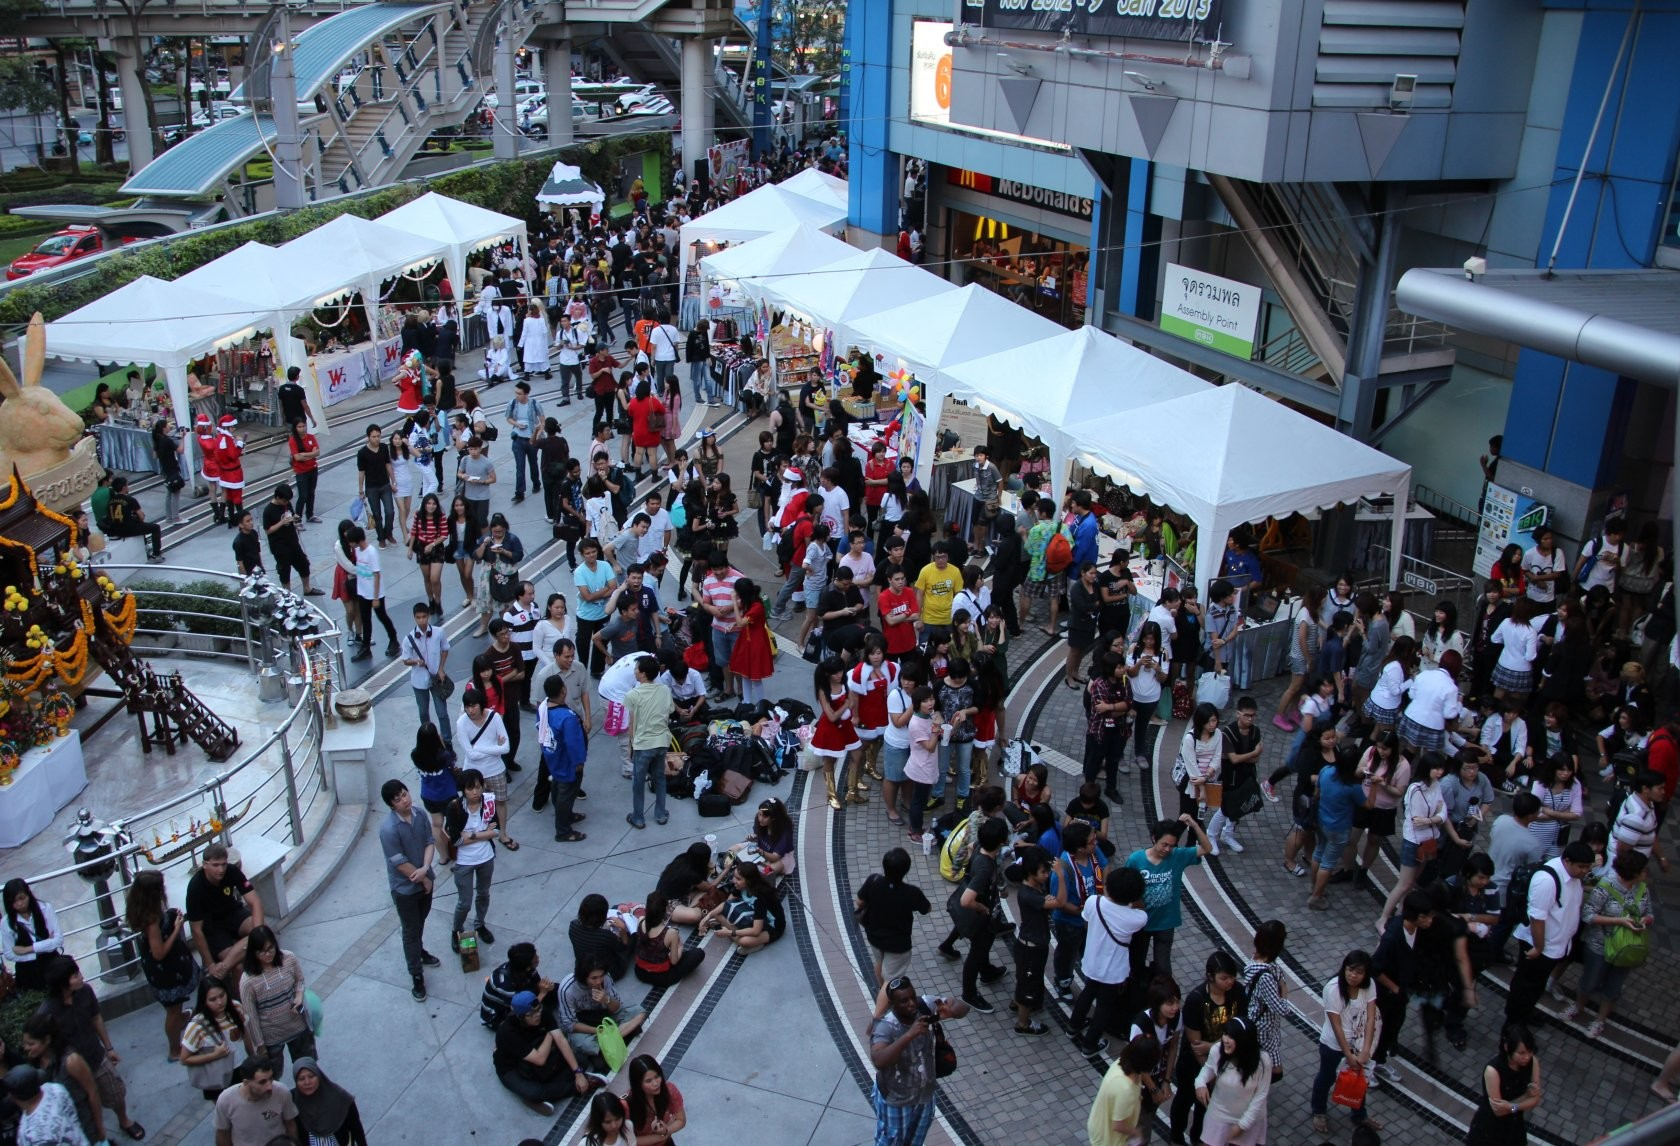 Bangkok - Cosplay / Festival J-Trends in Town am MBK XL